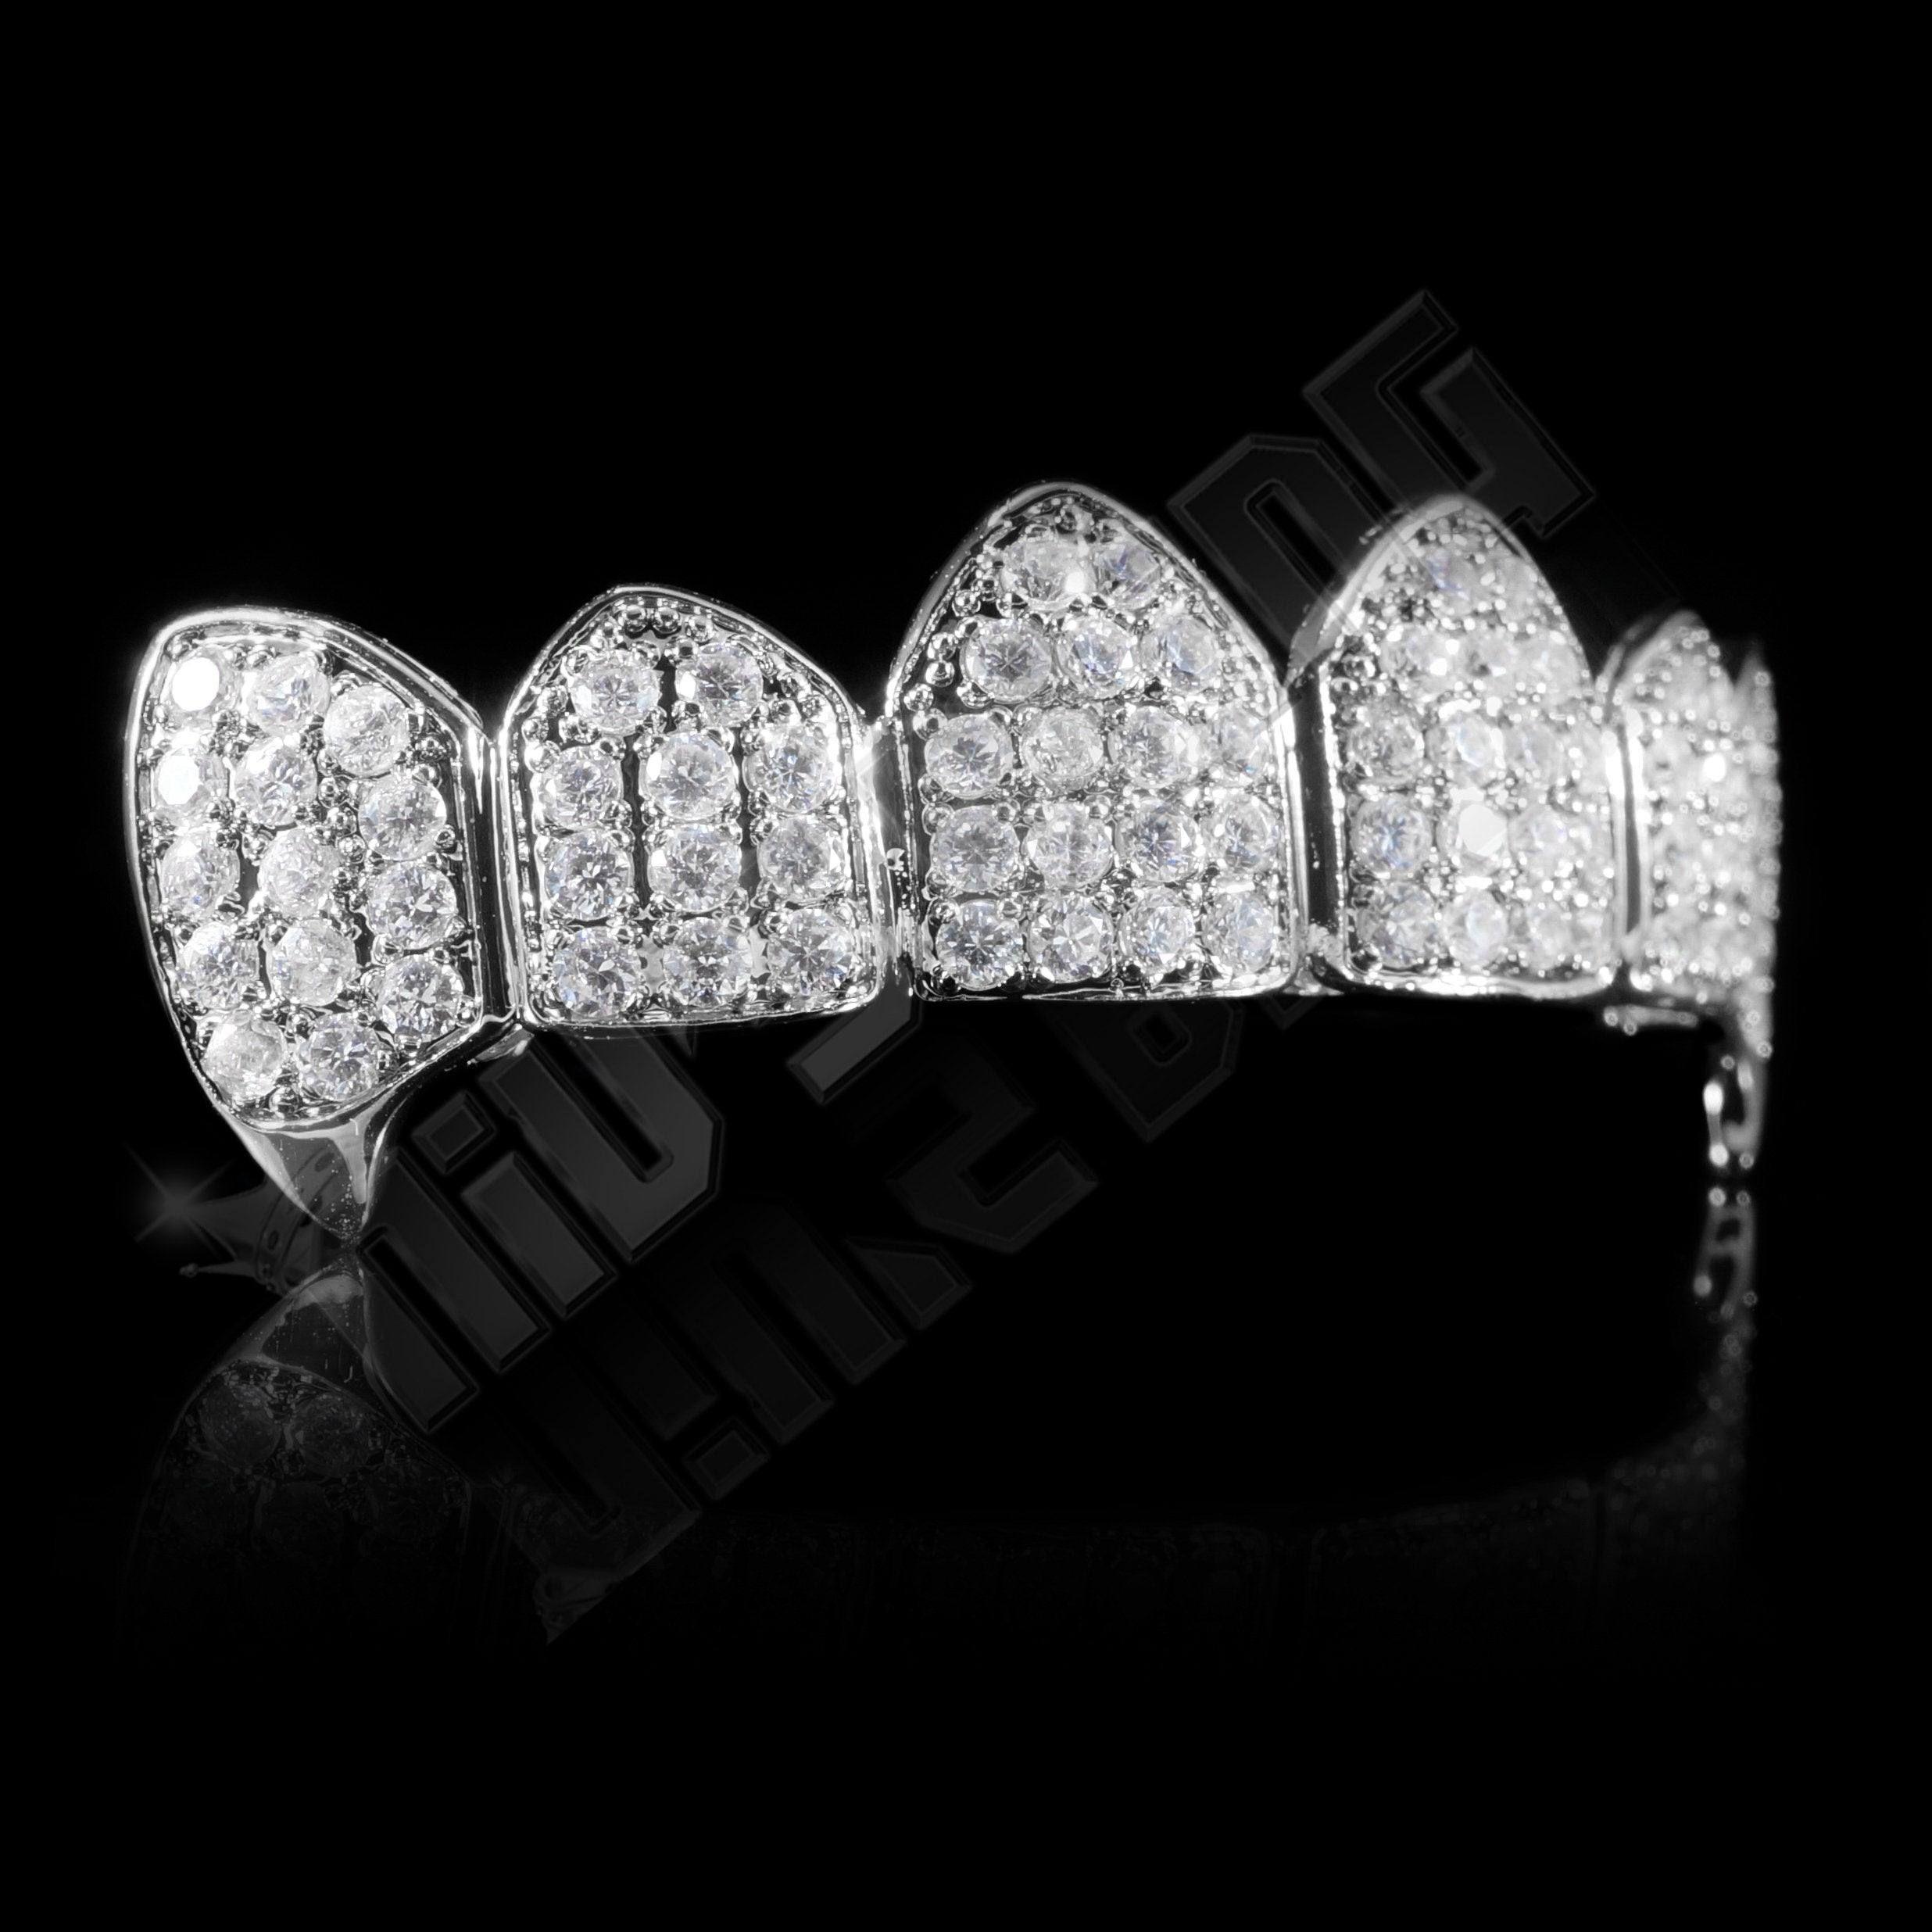 Affordable 18K White Gold Plated Fang CZ Cluster Top Bottom Hip Hop Grillz - Top Side Grill